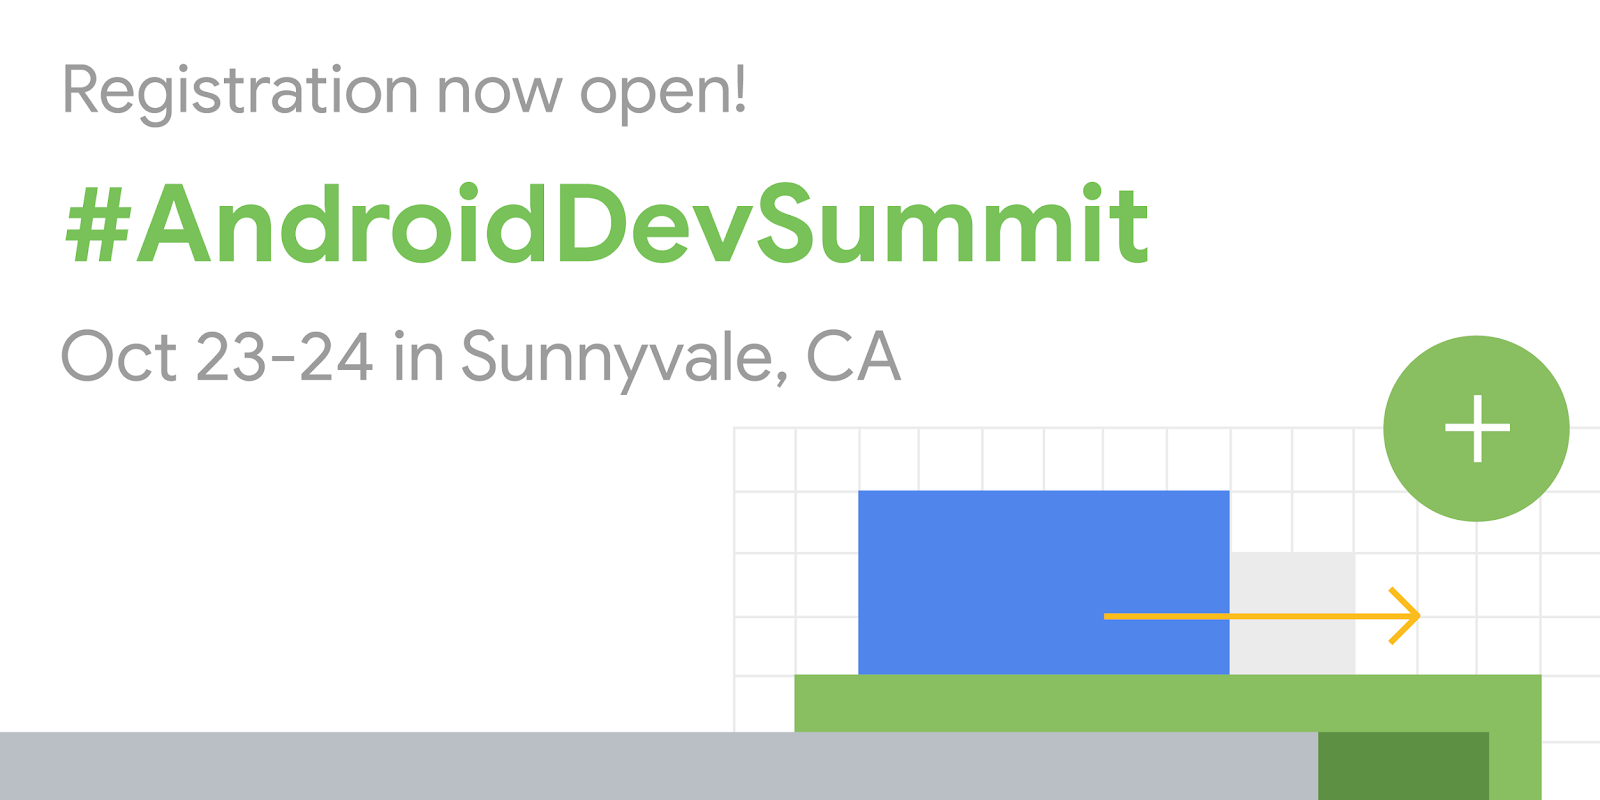 Registration now open! #AndroidDevSummit. Oct 23-24 in Sunnyvale, CA